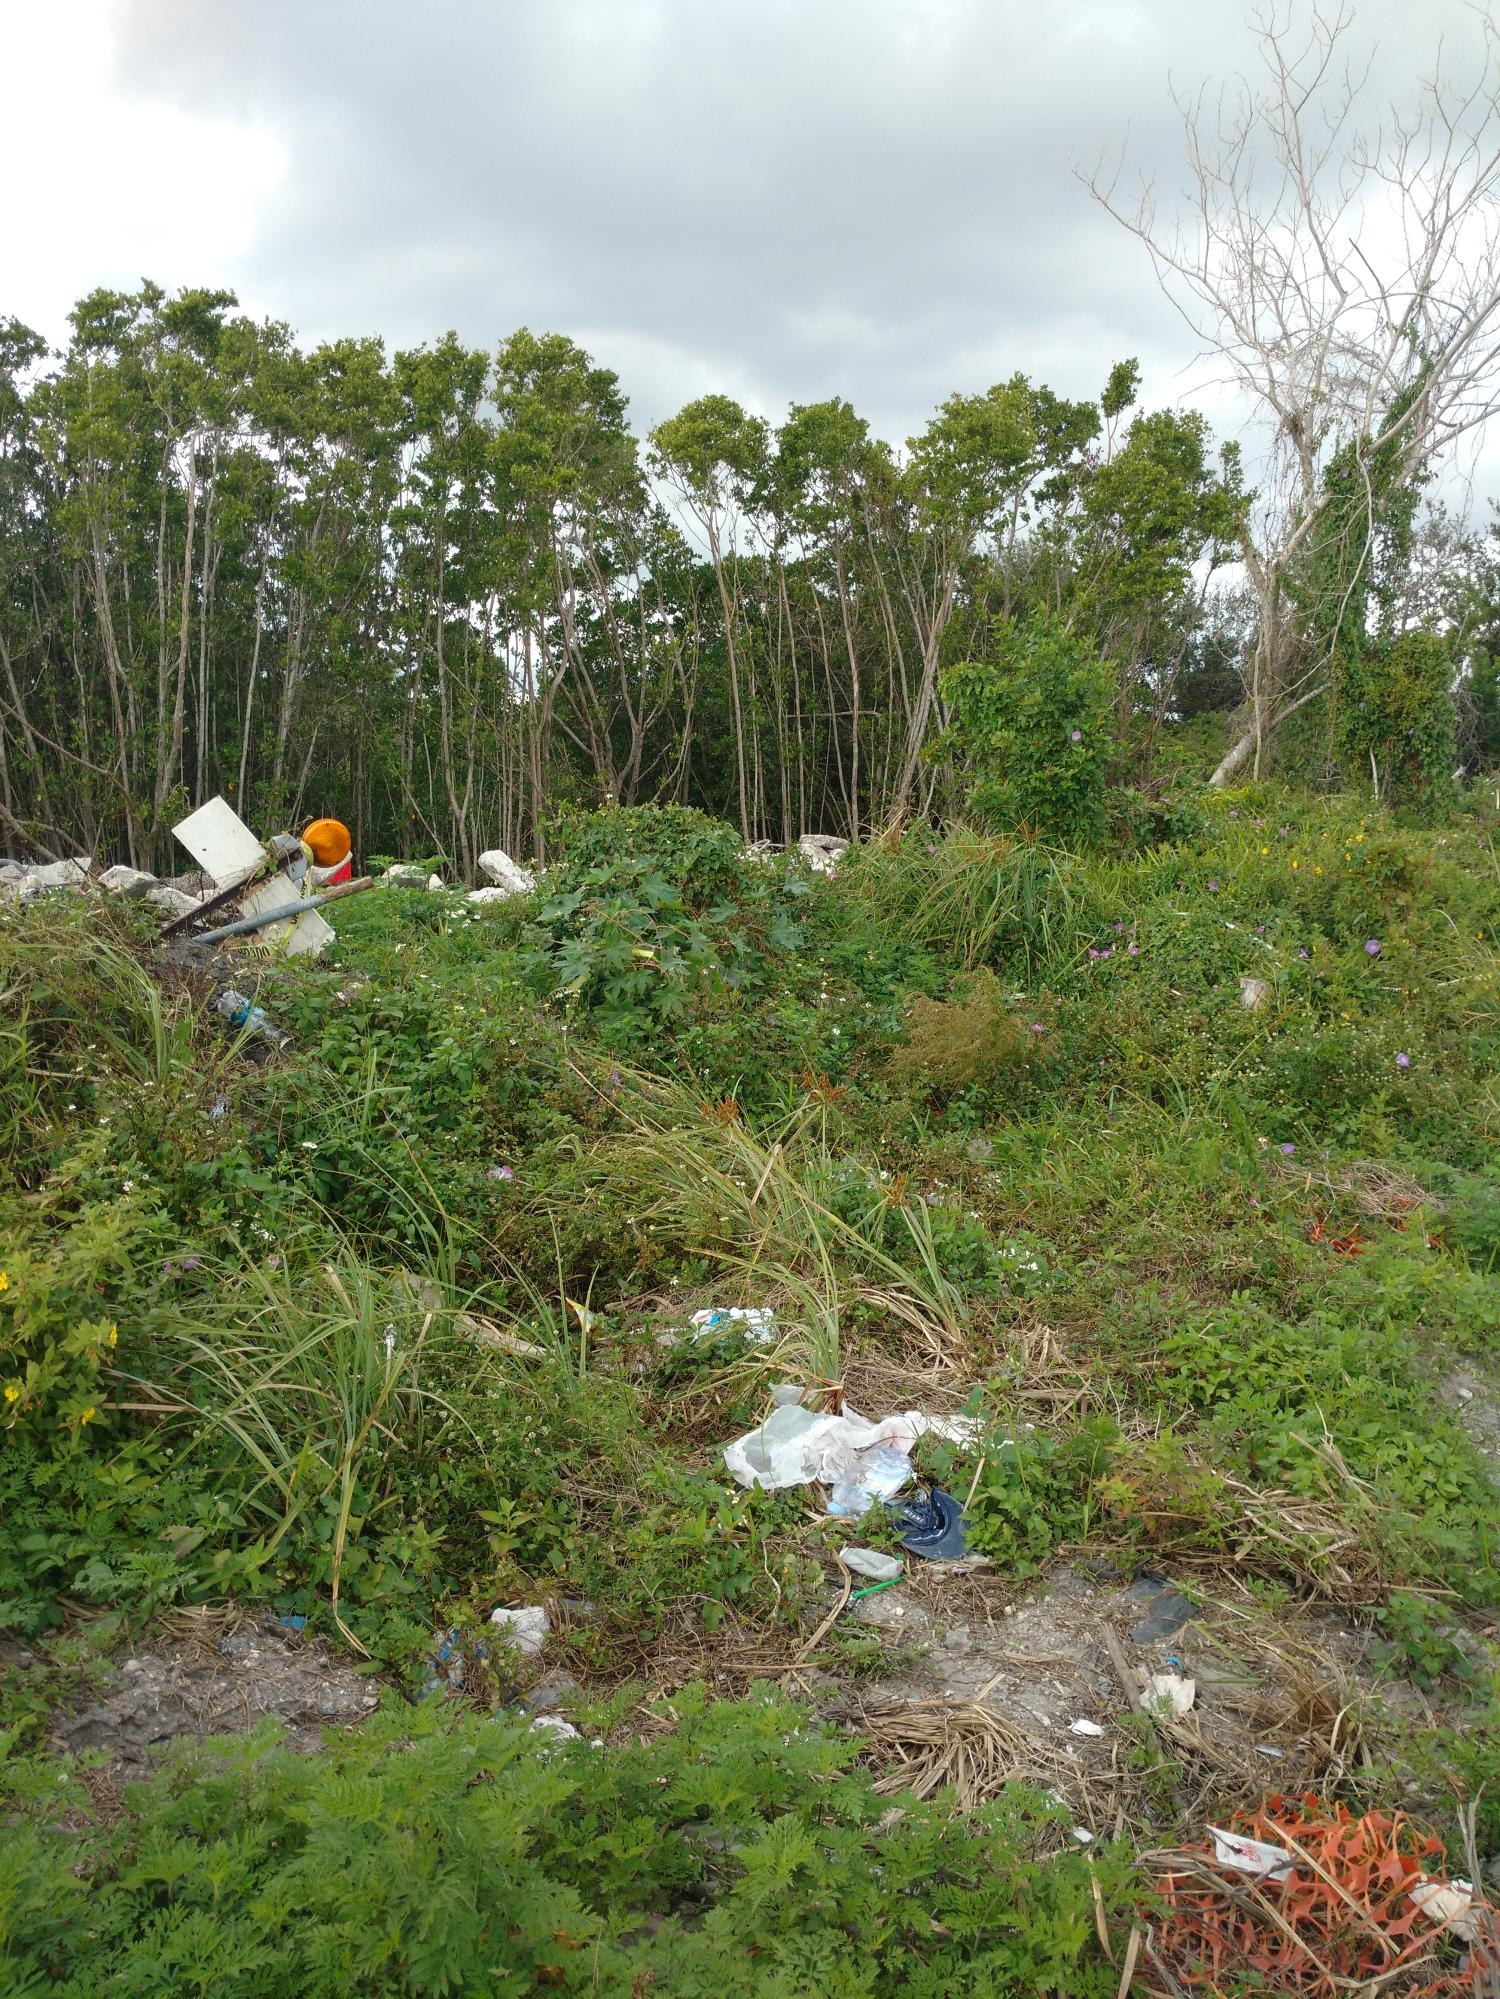 Property needs developed, Five plus acres in thee heart of Hollywood, RS-6, Possible waterway access go to intra coastal, partially cleared. Around the corner from a major shopping area.